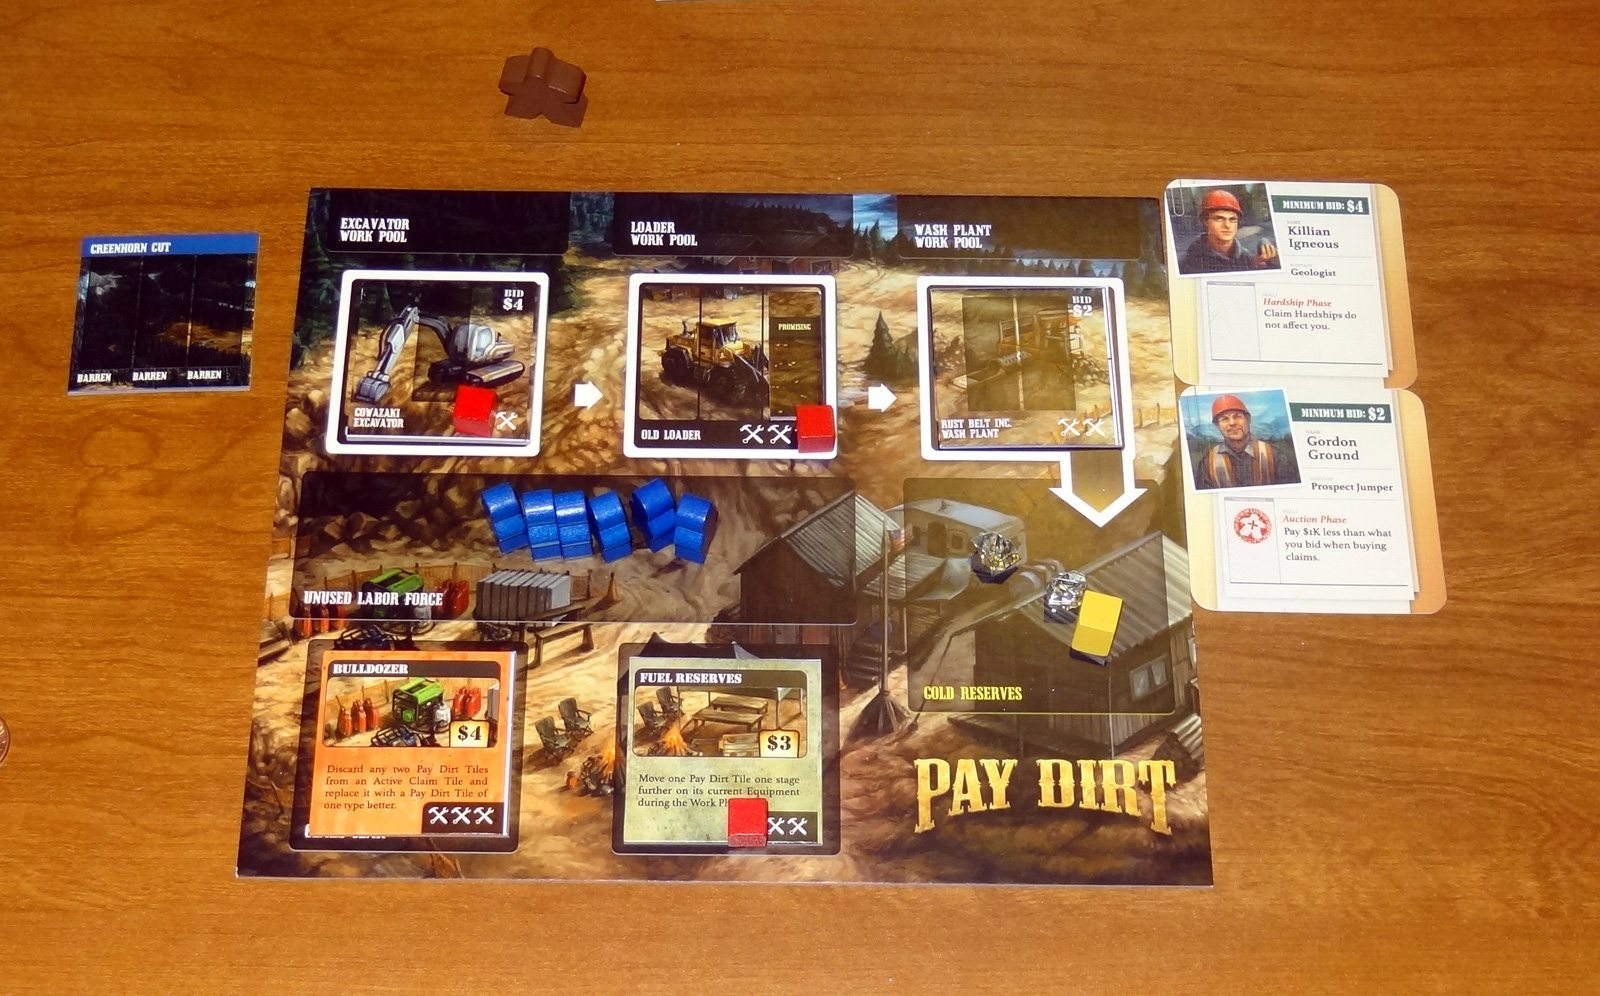 Pay Dirt player board